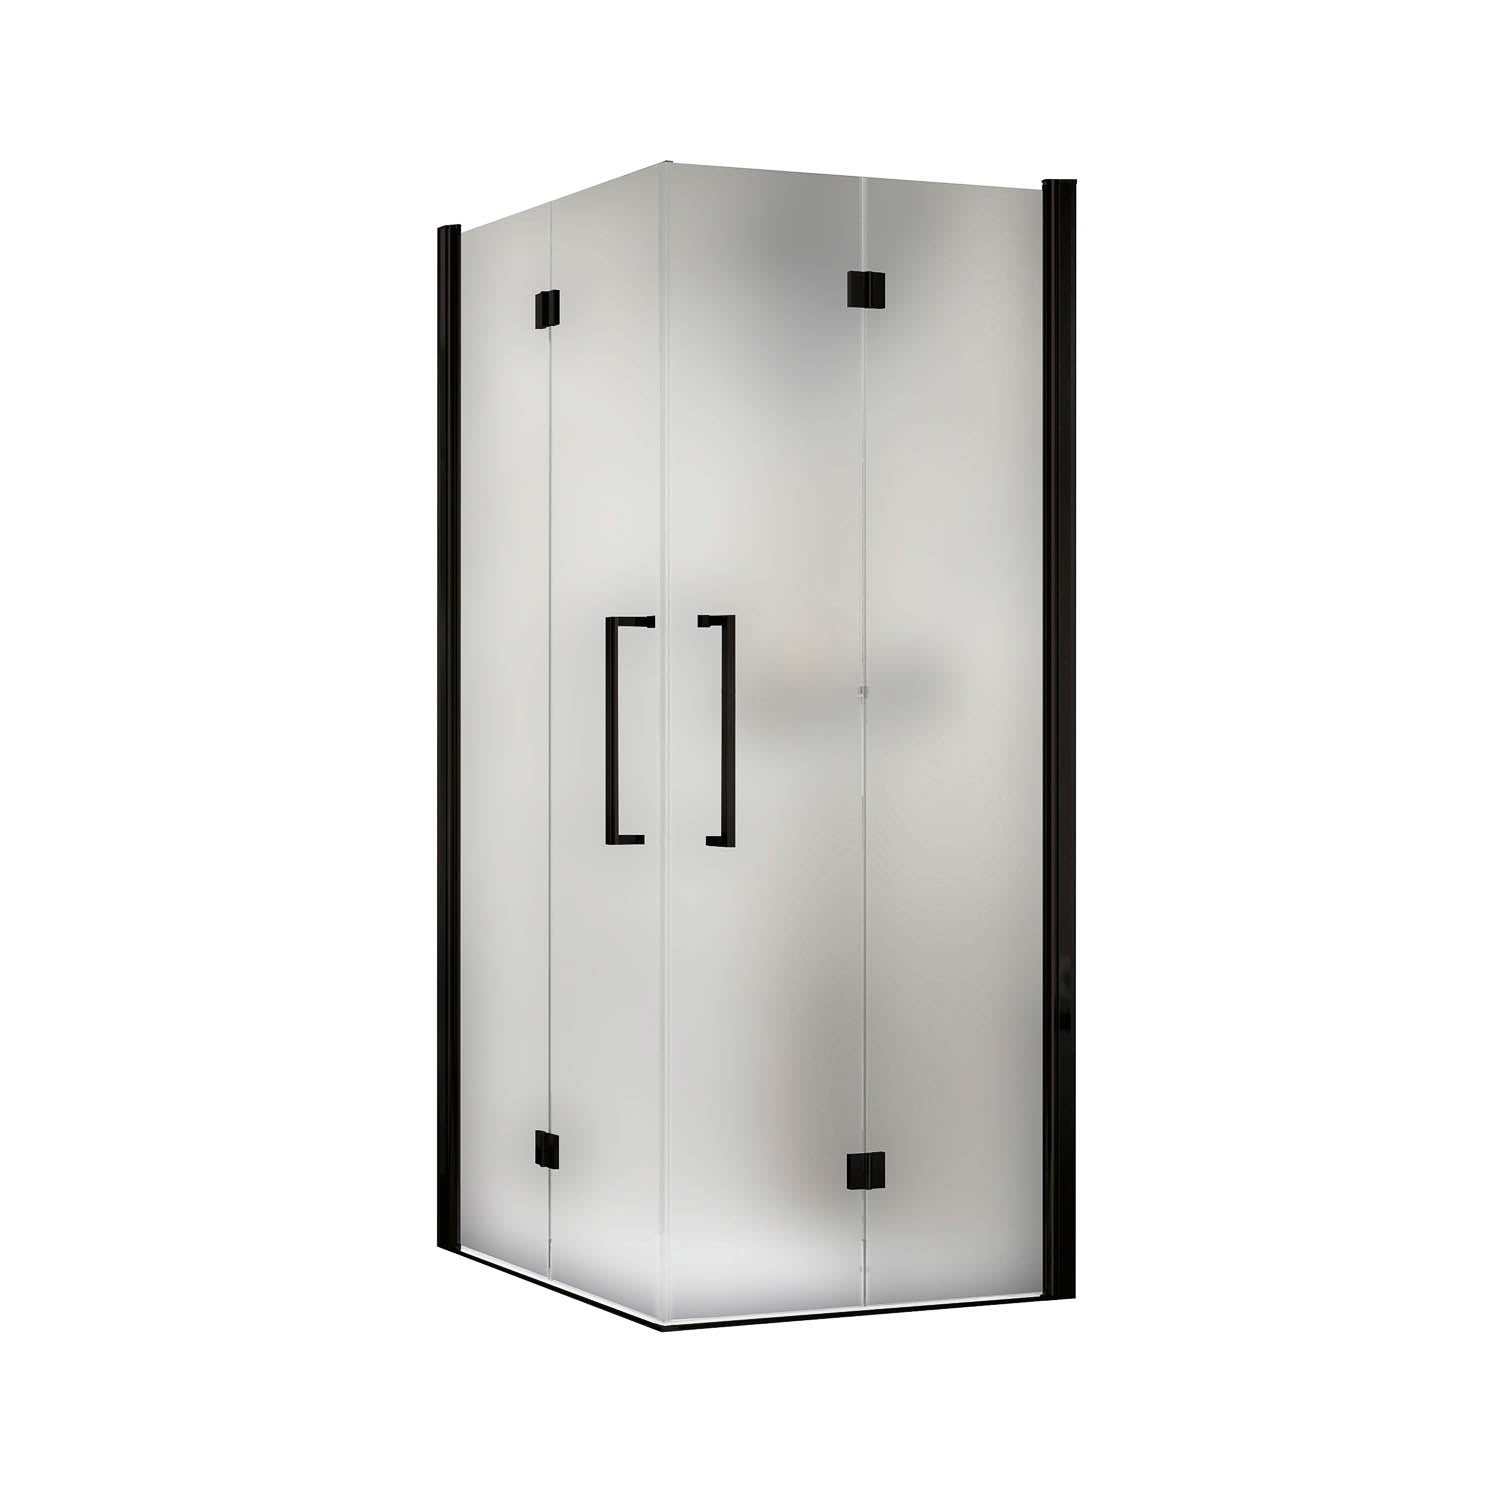 990-1010mm Bliss Bi-folding Screen Frosted Glass with a matt black finish on a white background